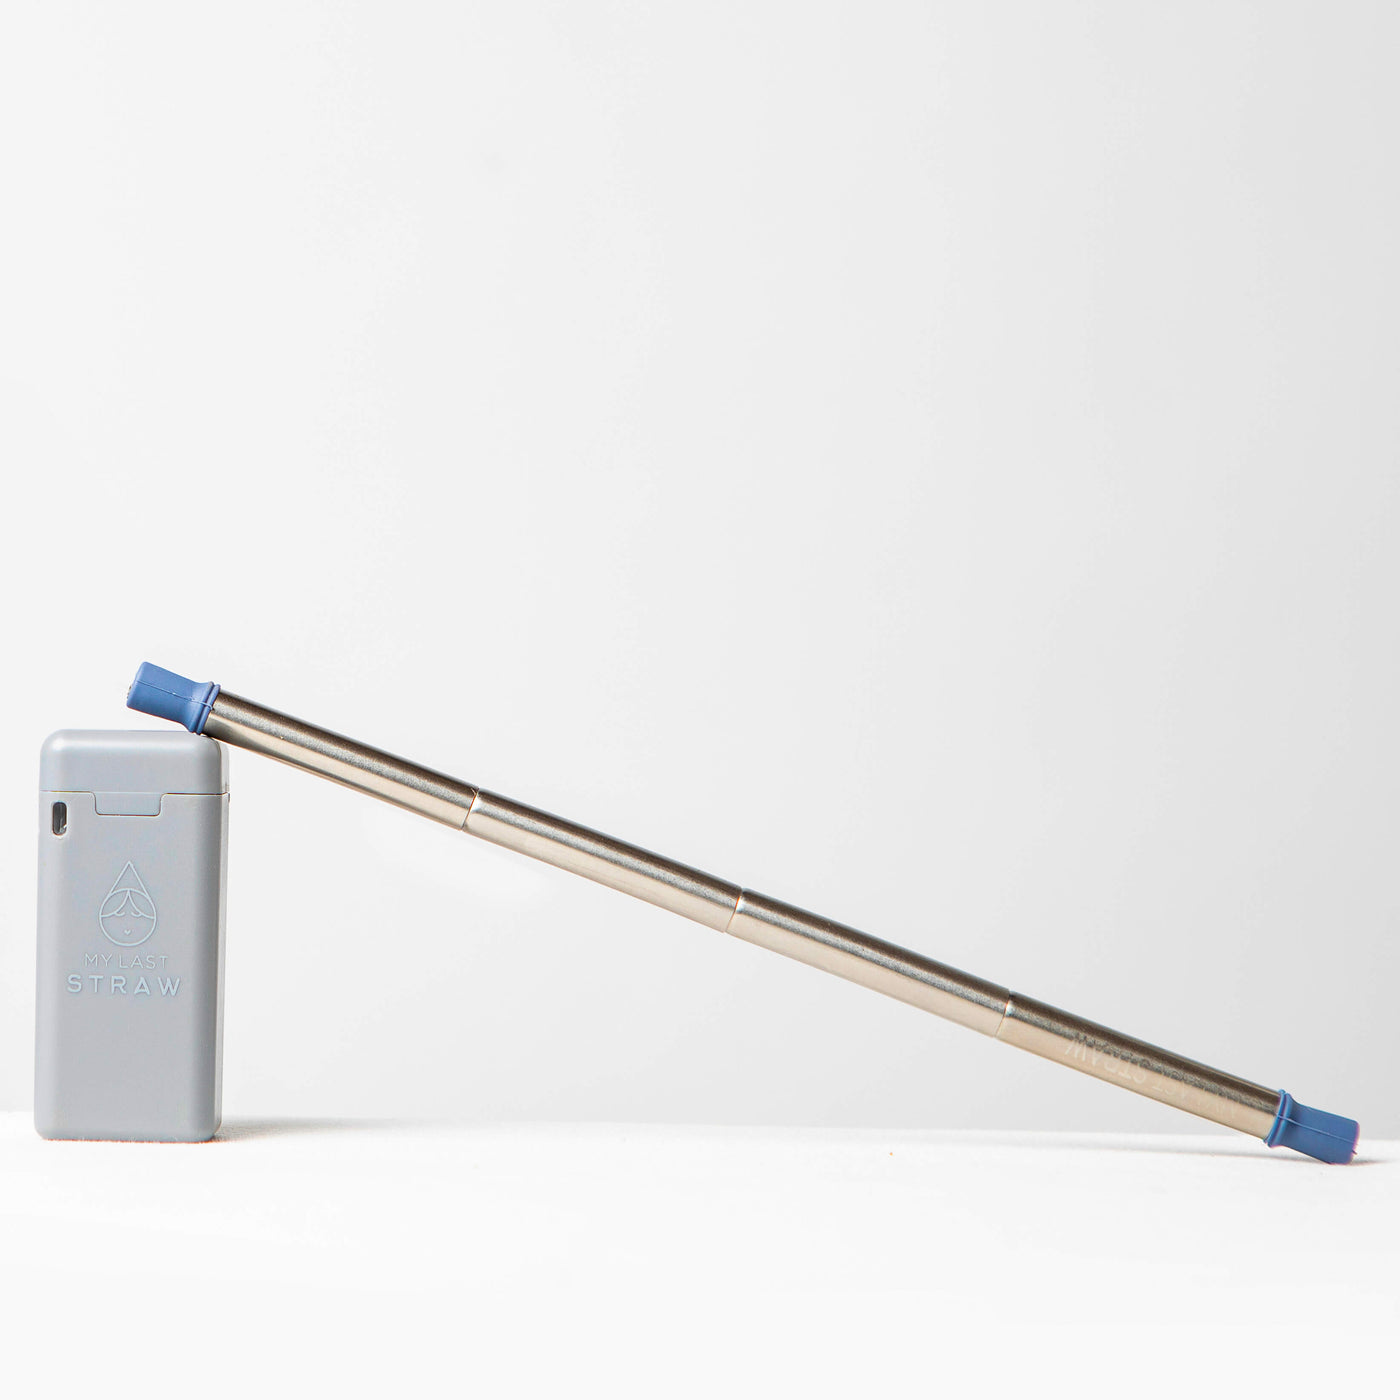 Grey Case Portable Collapsible Reusable Straw - My Last Straw